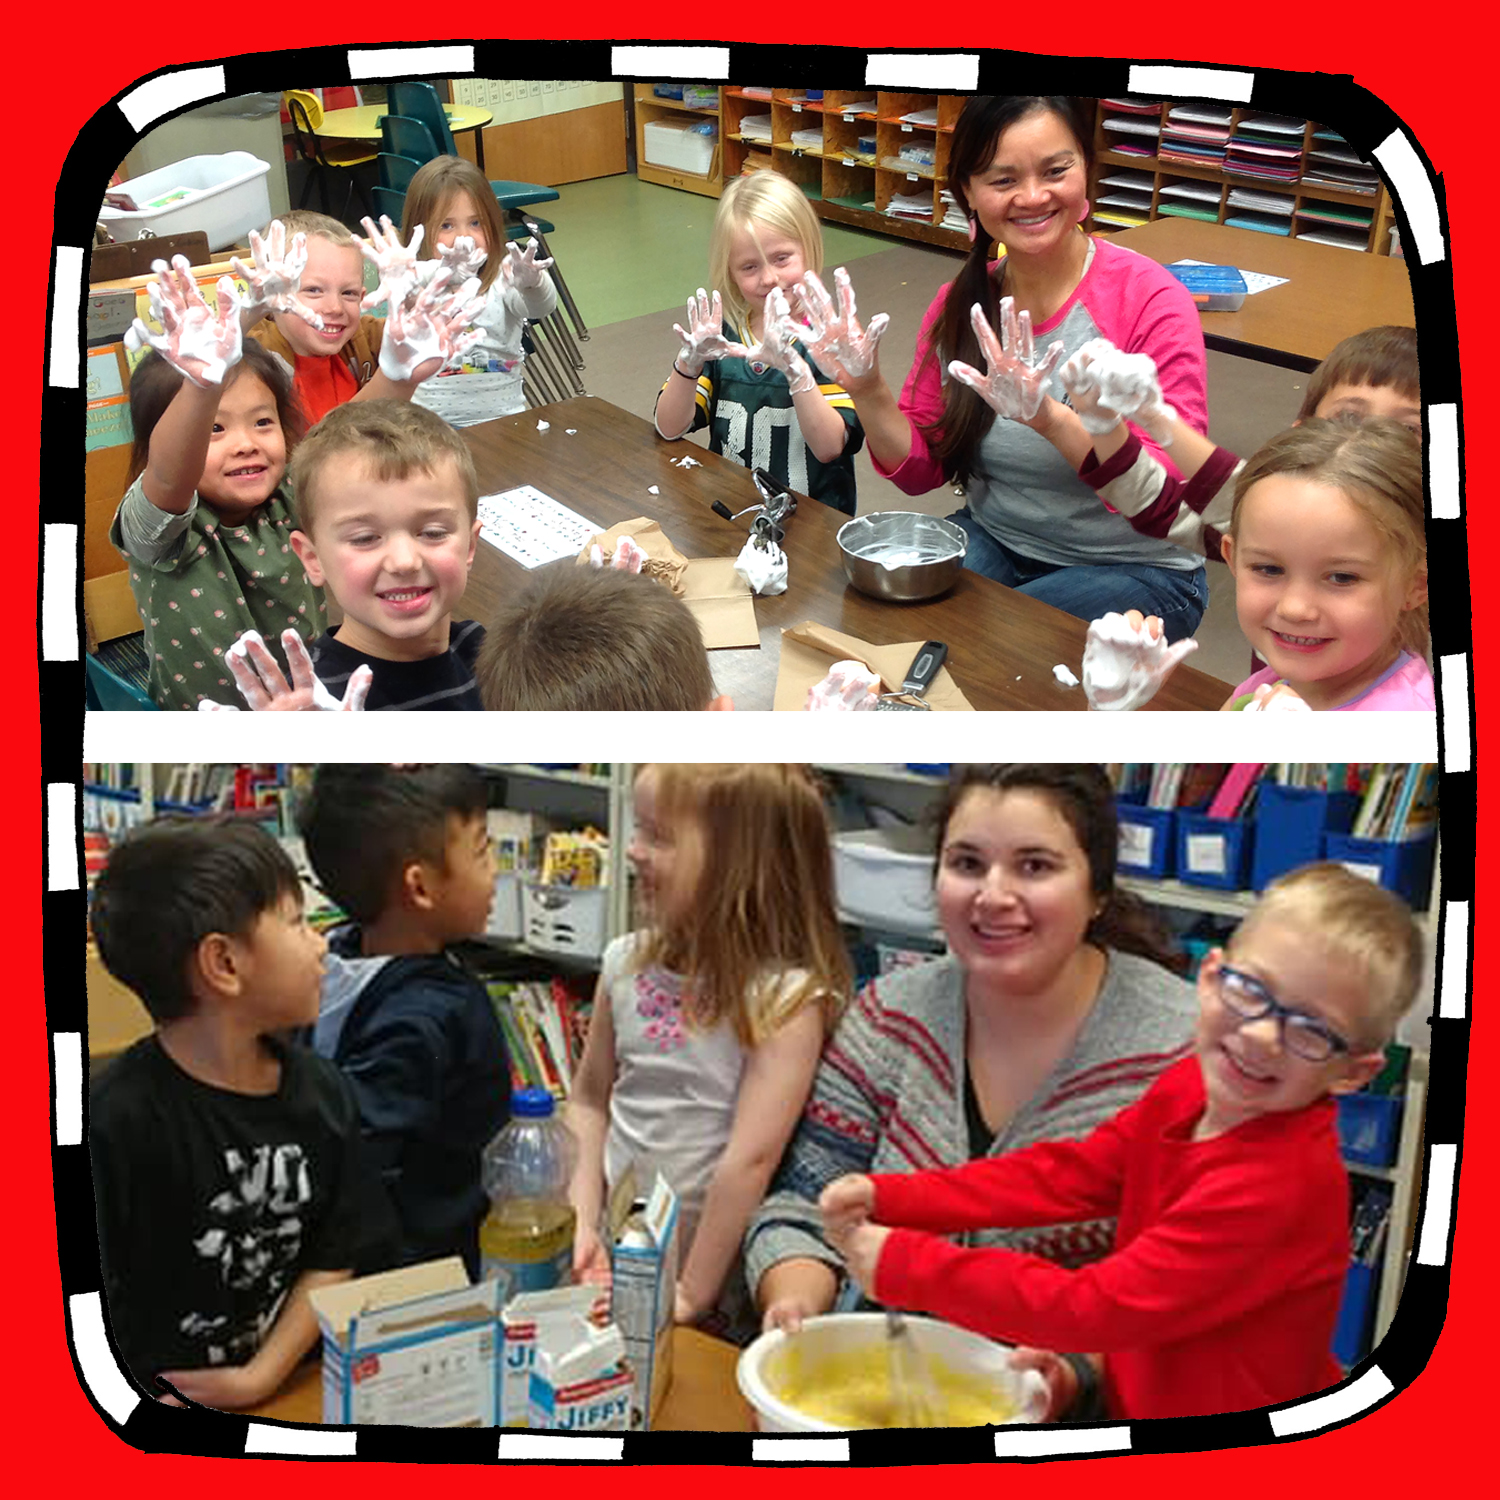 COOKING CREATIONS - BOYS AND GIRLS CLUBLocation: River Heights Elementary (1.2 miles from Stout - vehicle recommended)Class size: 10 students, grades 3-5Fall semester, starting mid-September (appx. 40 hours total)M/W 4:45-6:15pm OR TU/TH 4:45-6:15pm35 hours during the college semester, plus 5 hours of paid planning time.Create delectable edibles by baking yummy creative treats! Teaching baking/cooking lessons and incorporate art projects, songs, children's books, or storytelling for edible entertainment! Supplies and food provided. Paid planning time included.